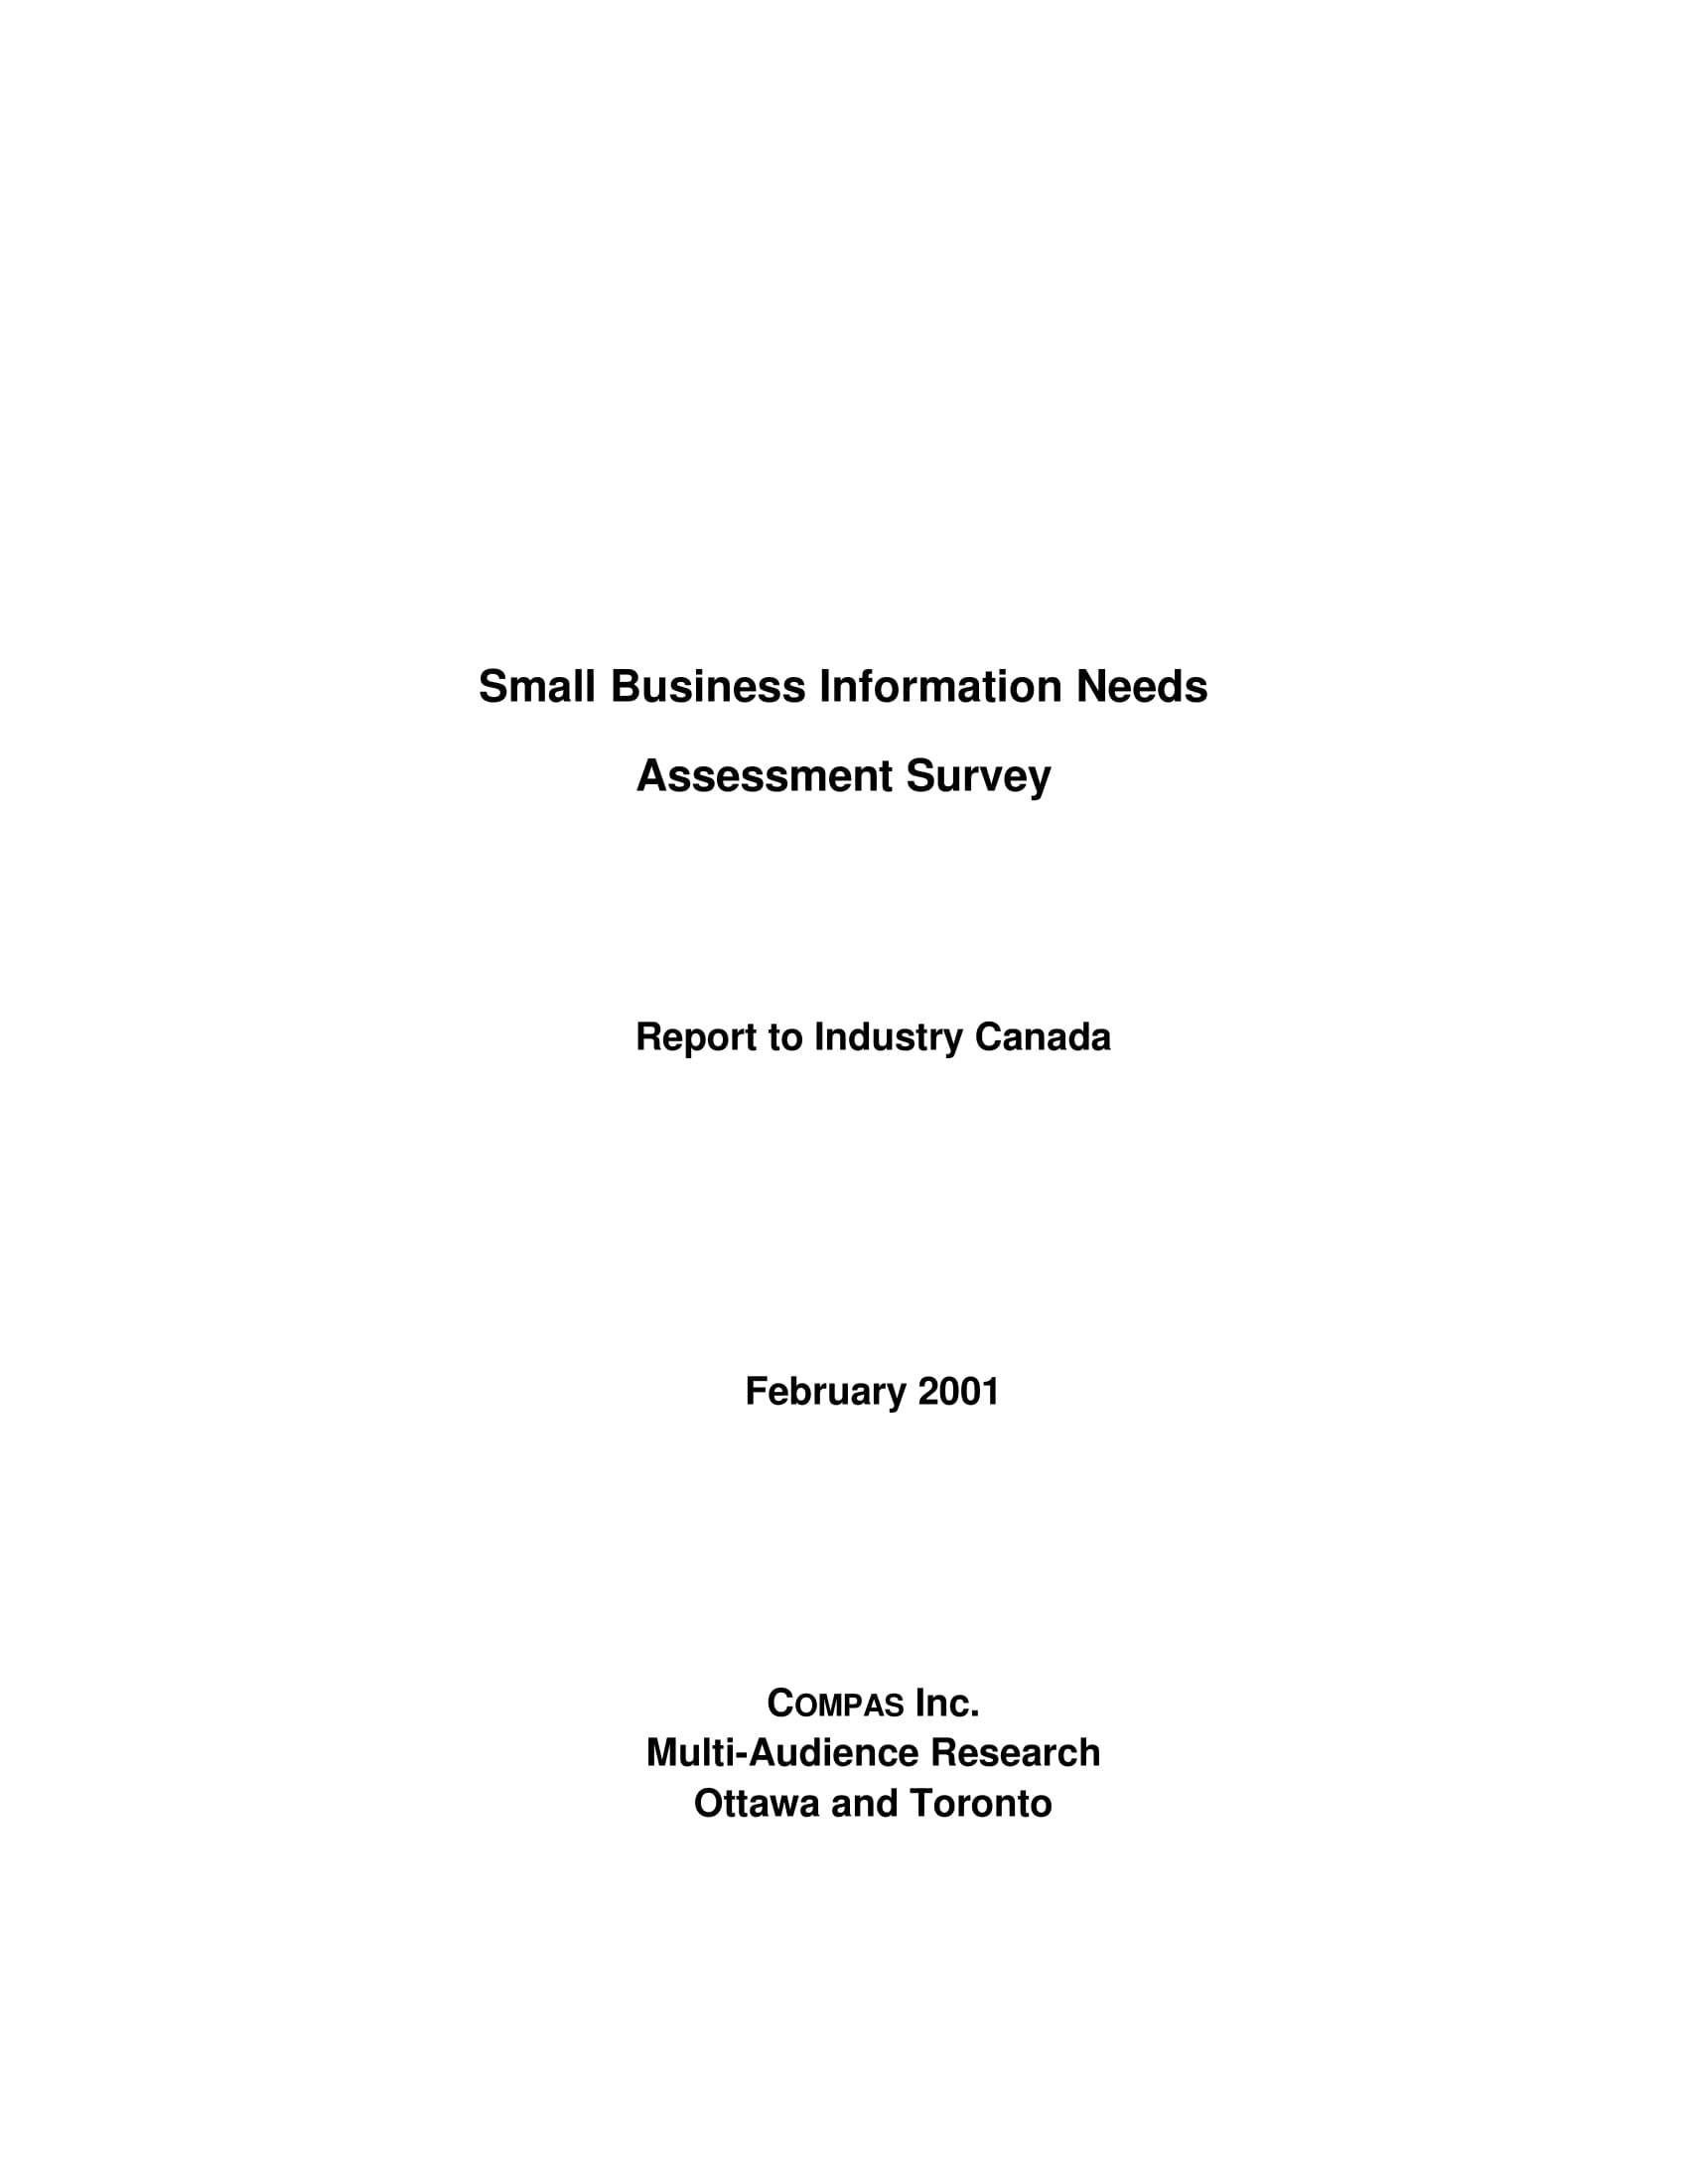 small business needs assessment survey report example